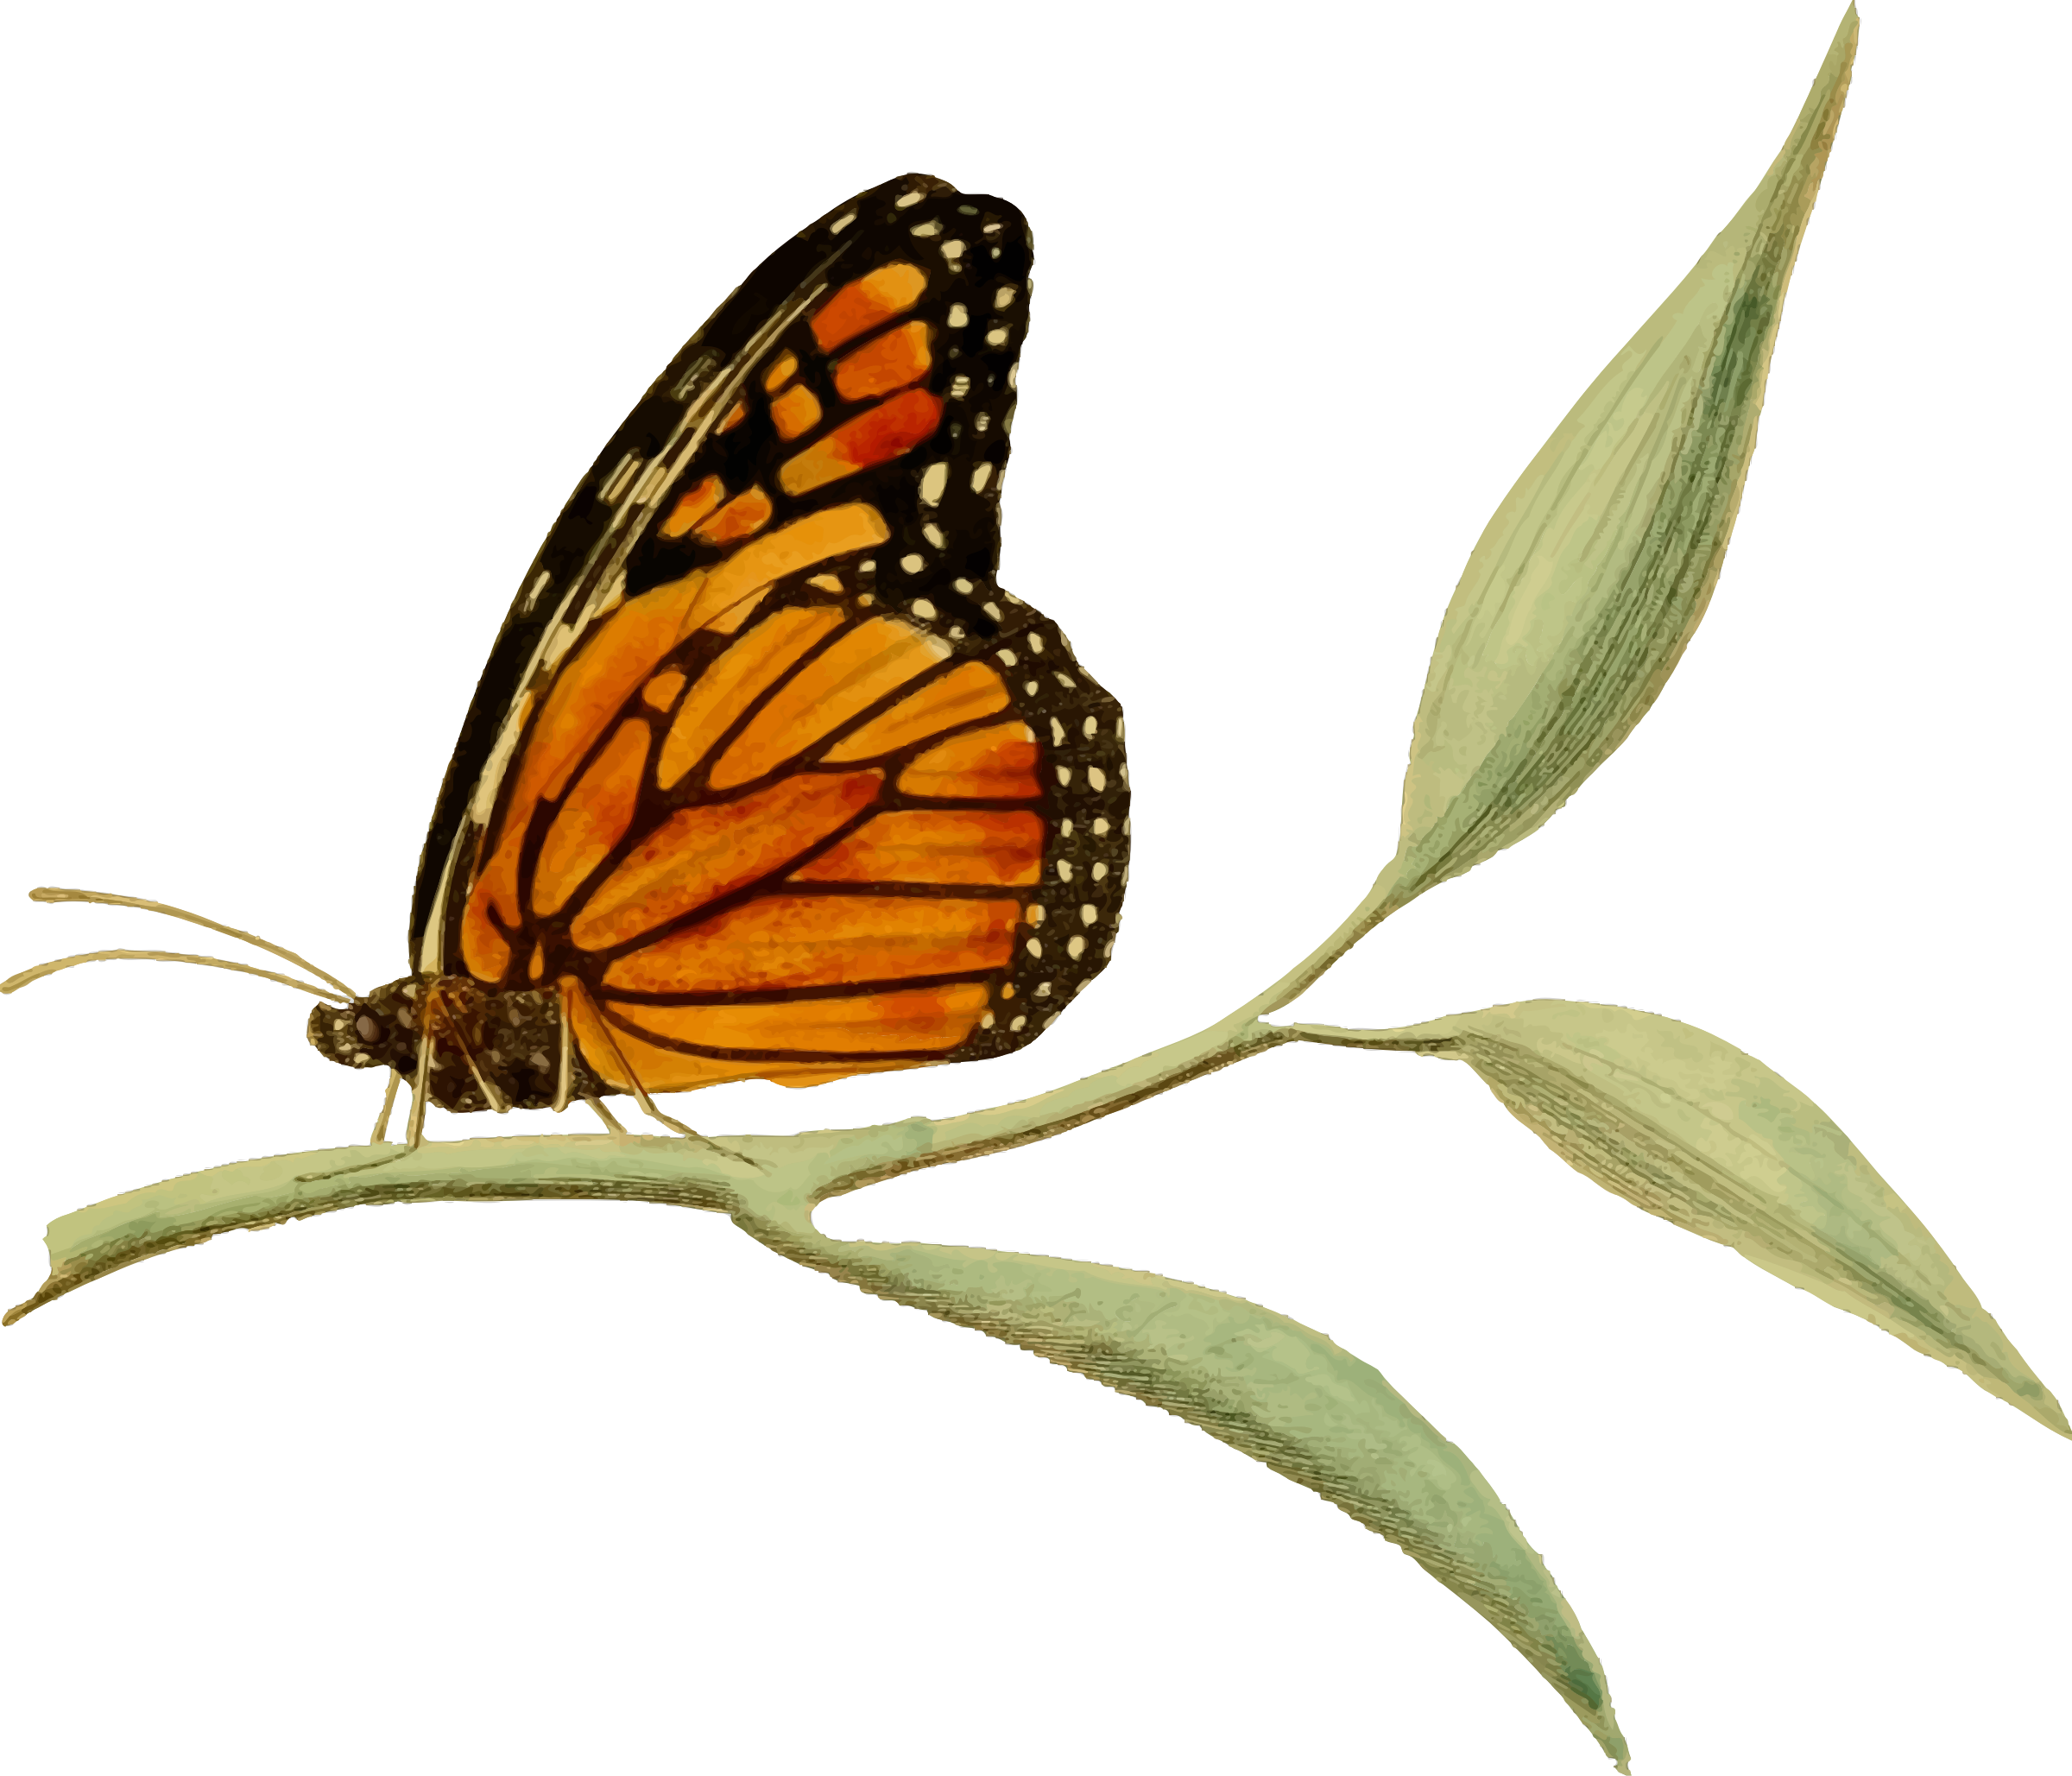 Monarch butterfly 2 by Firkin